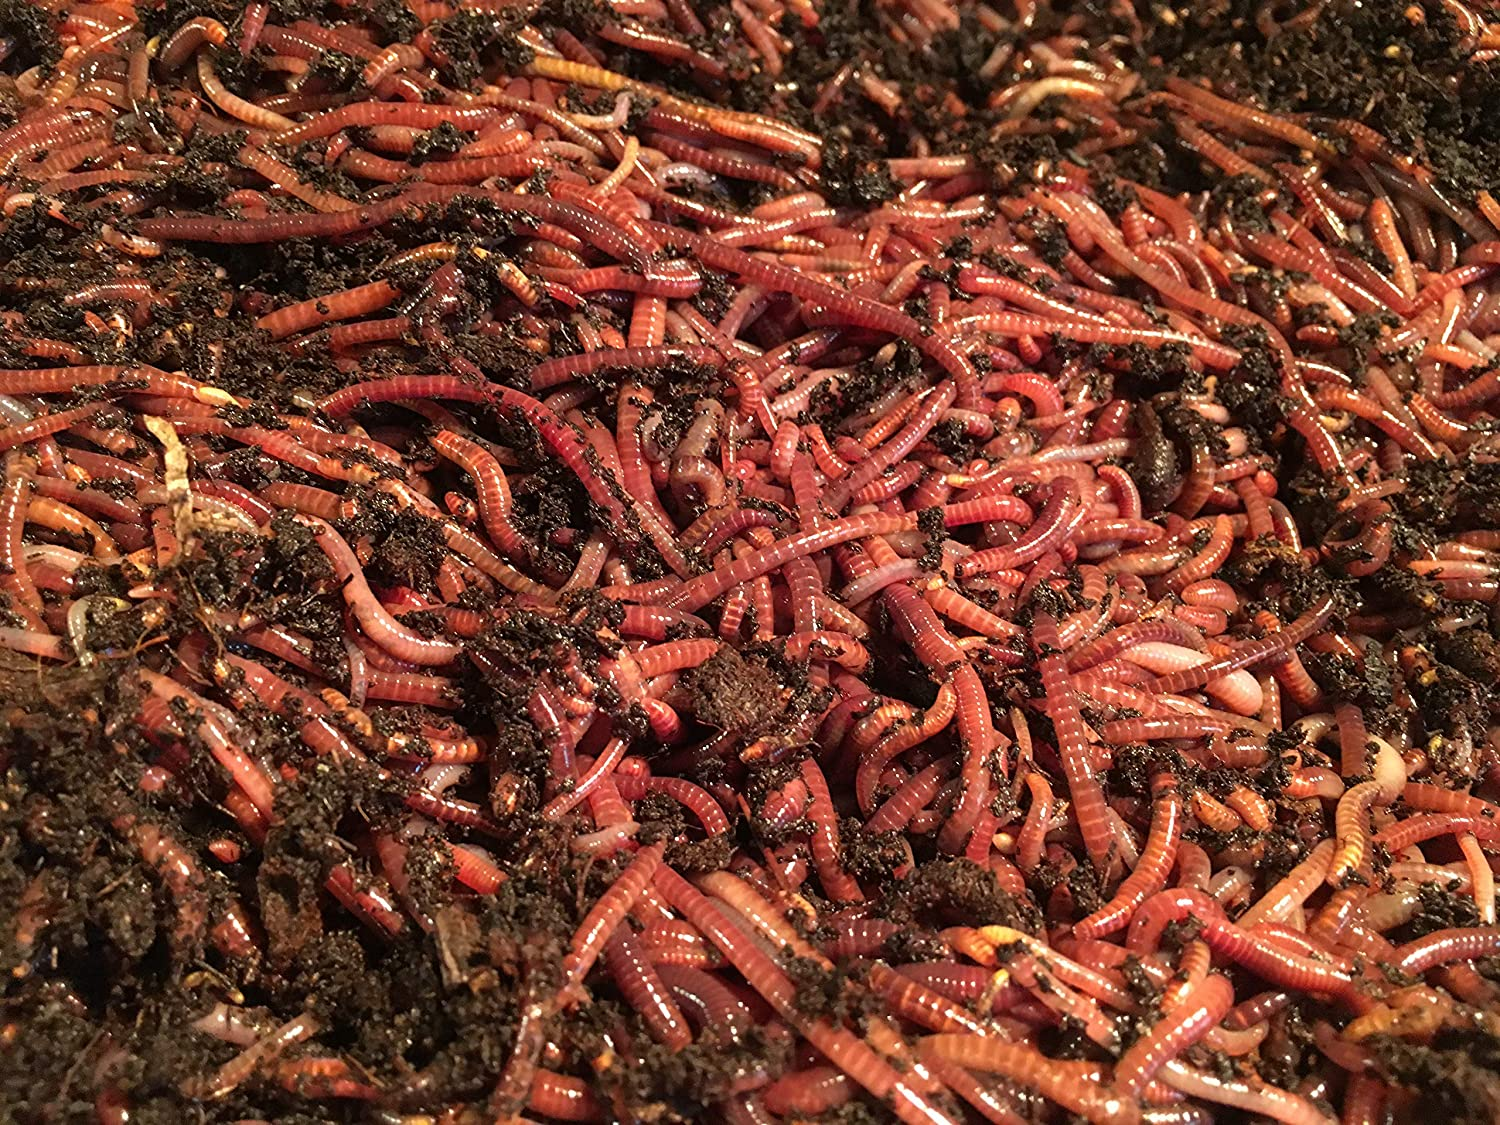 Red Wigglers 1//2 pound